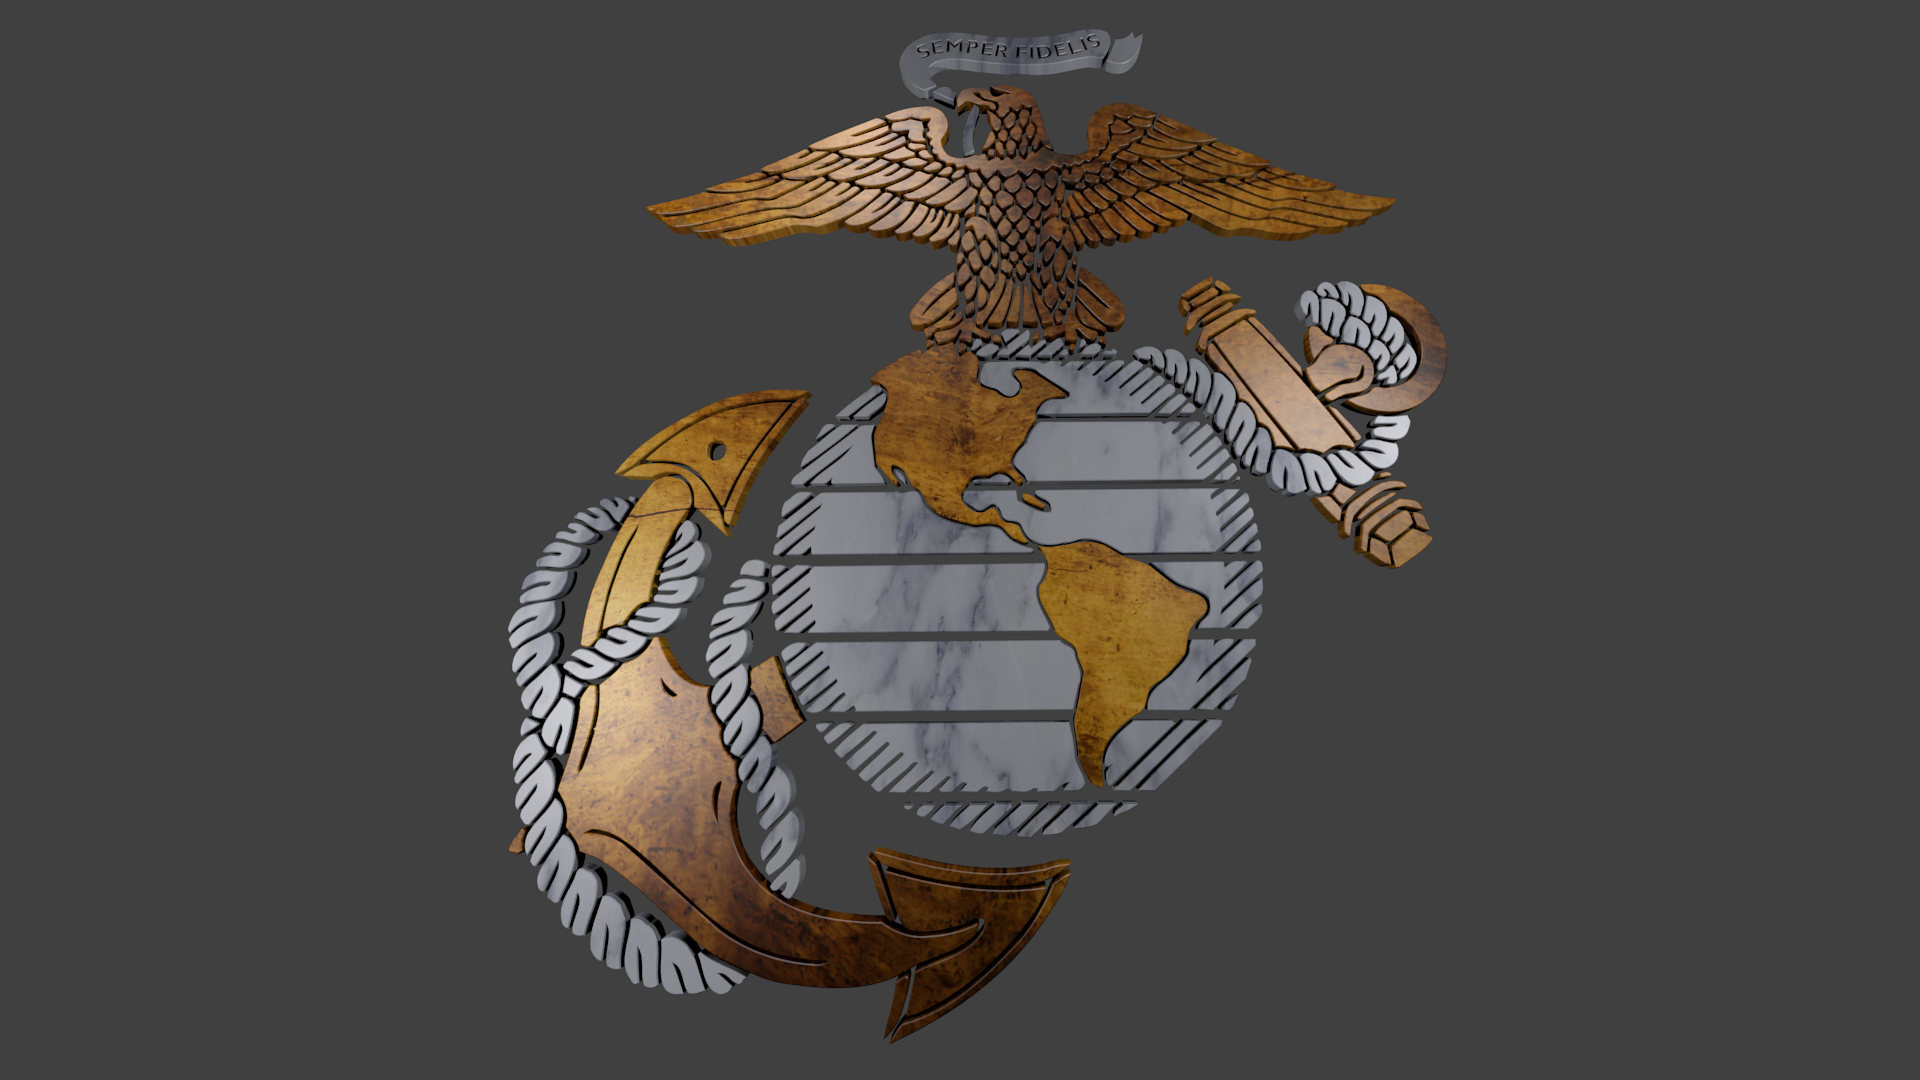 Usmc wallpapers and screensavers 65 images - Military screensavers wallpapers ...